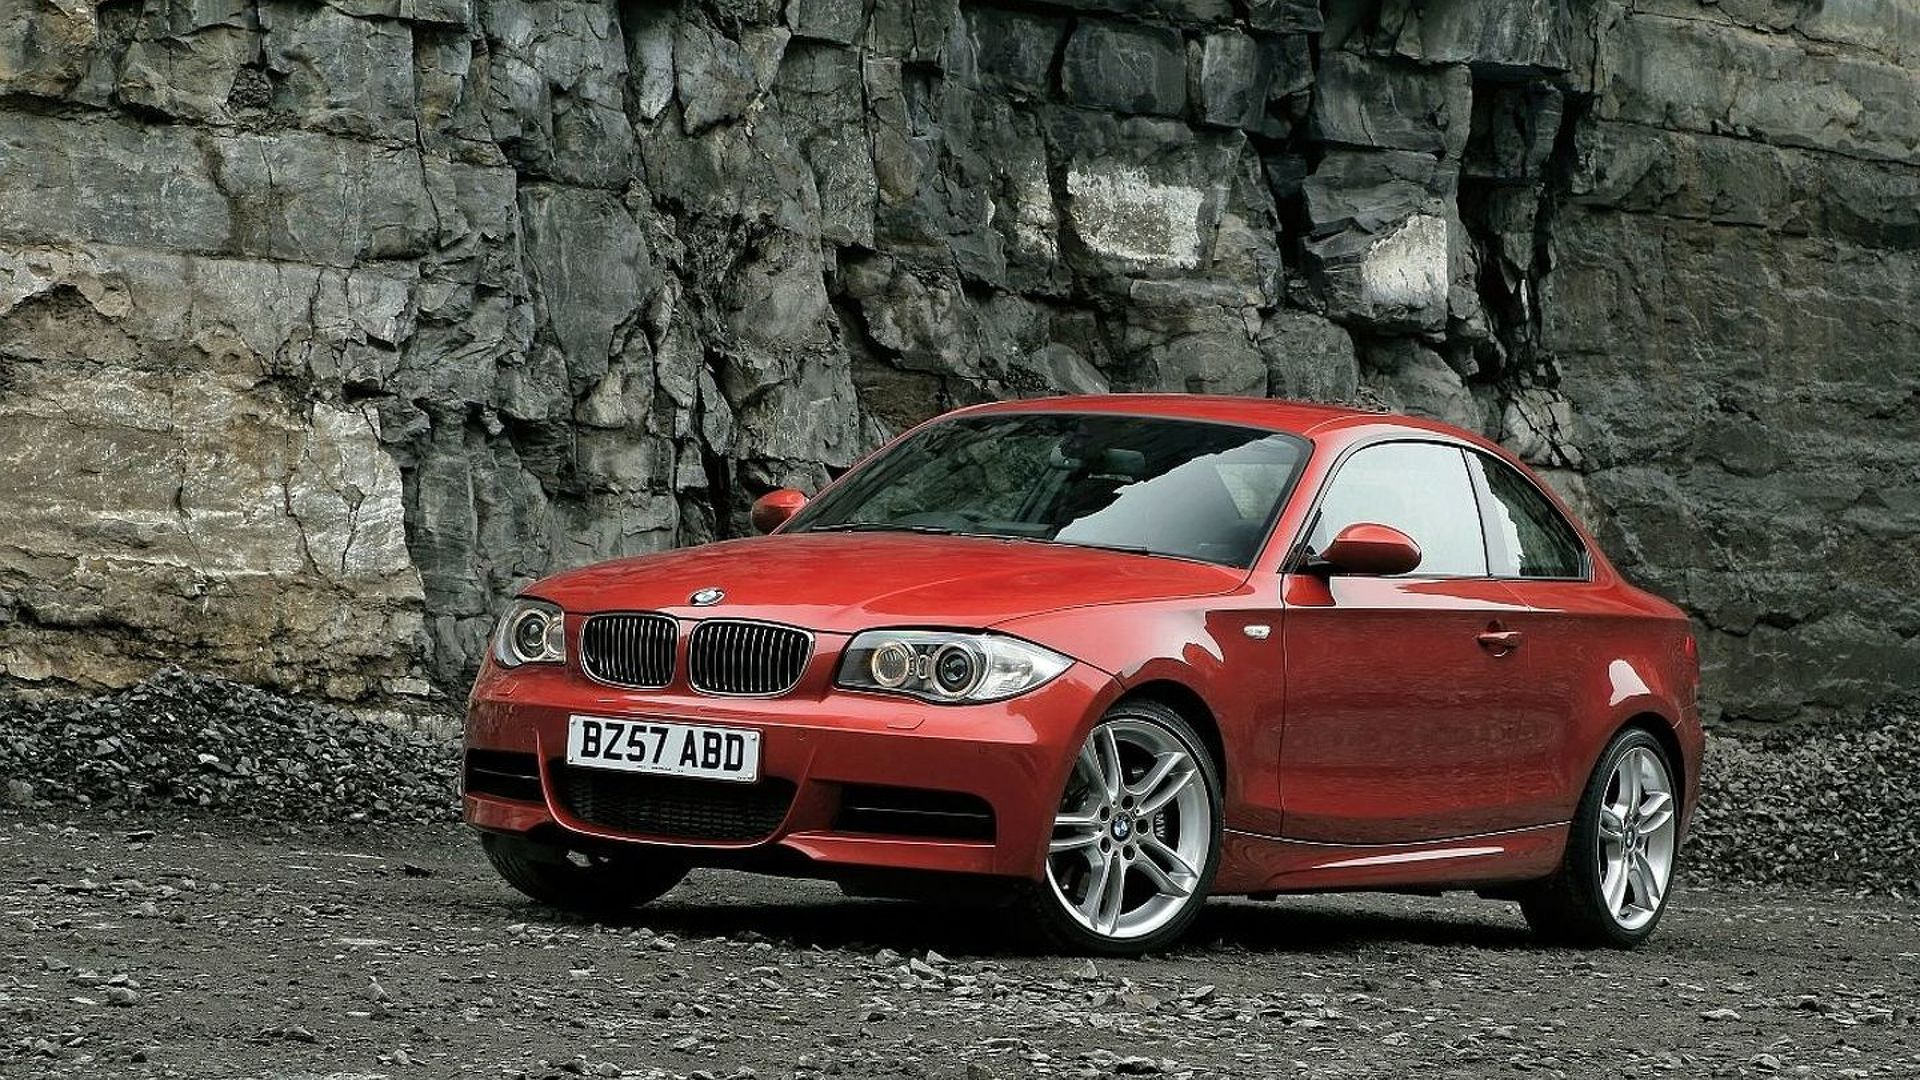 2011 Bmw 135i Coupe Gives Up Twin Turbo For Single Turbo N55 Engine